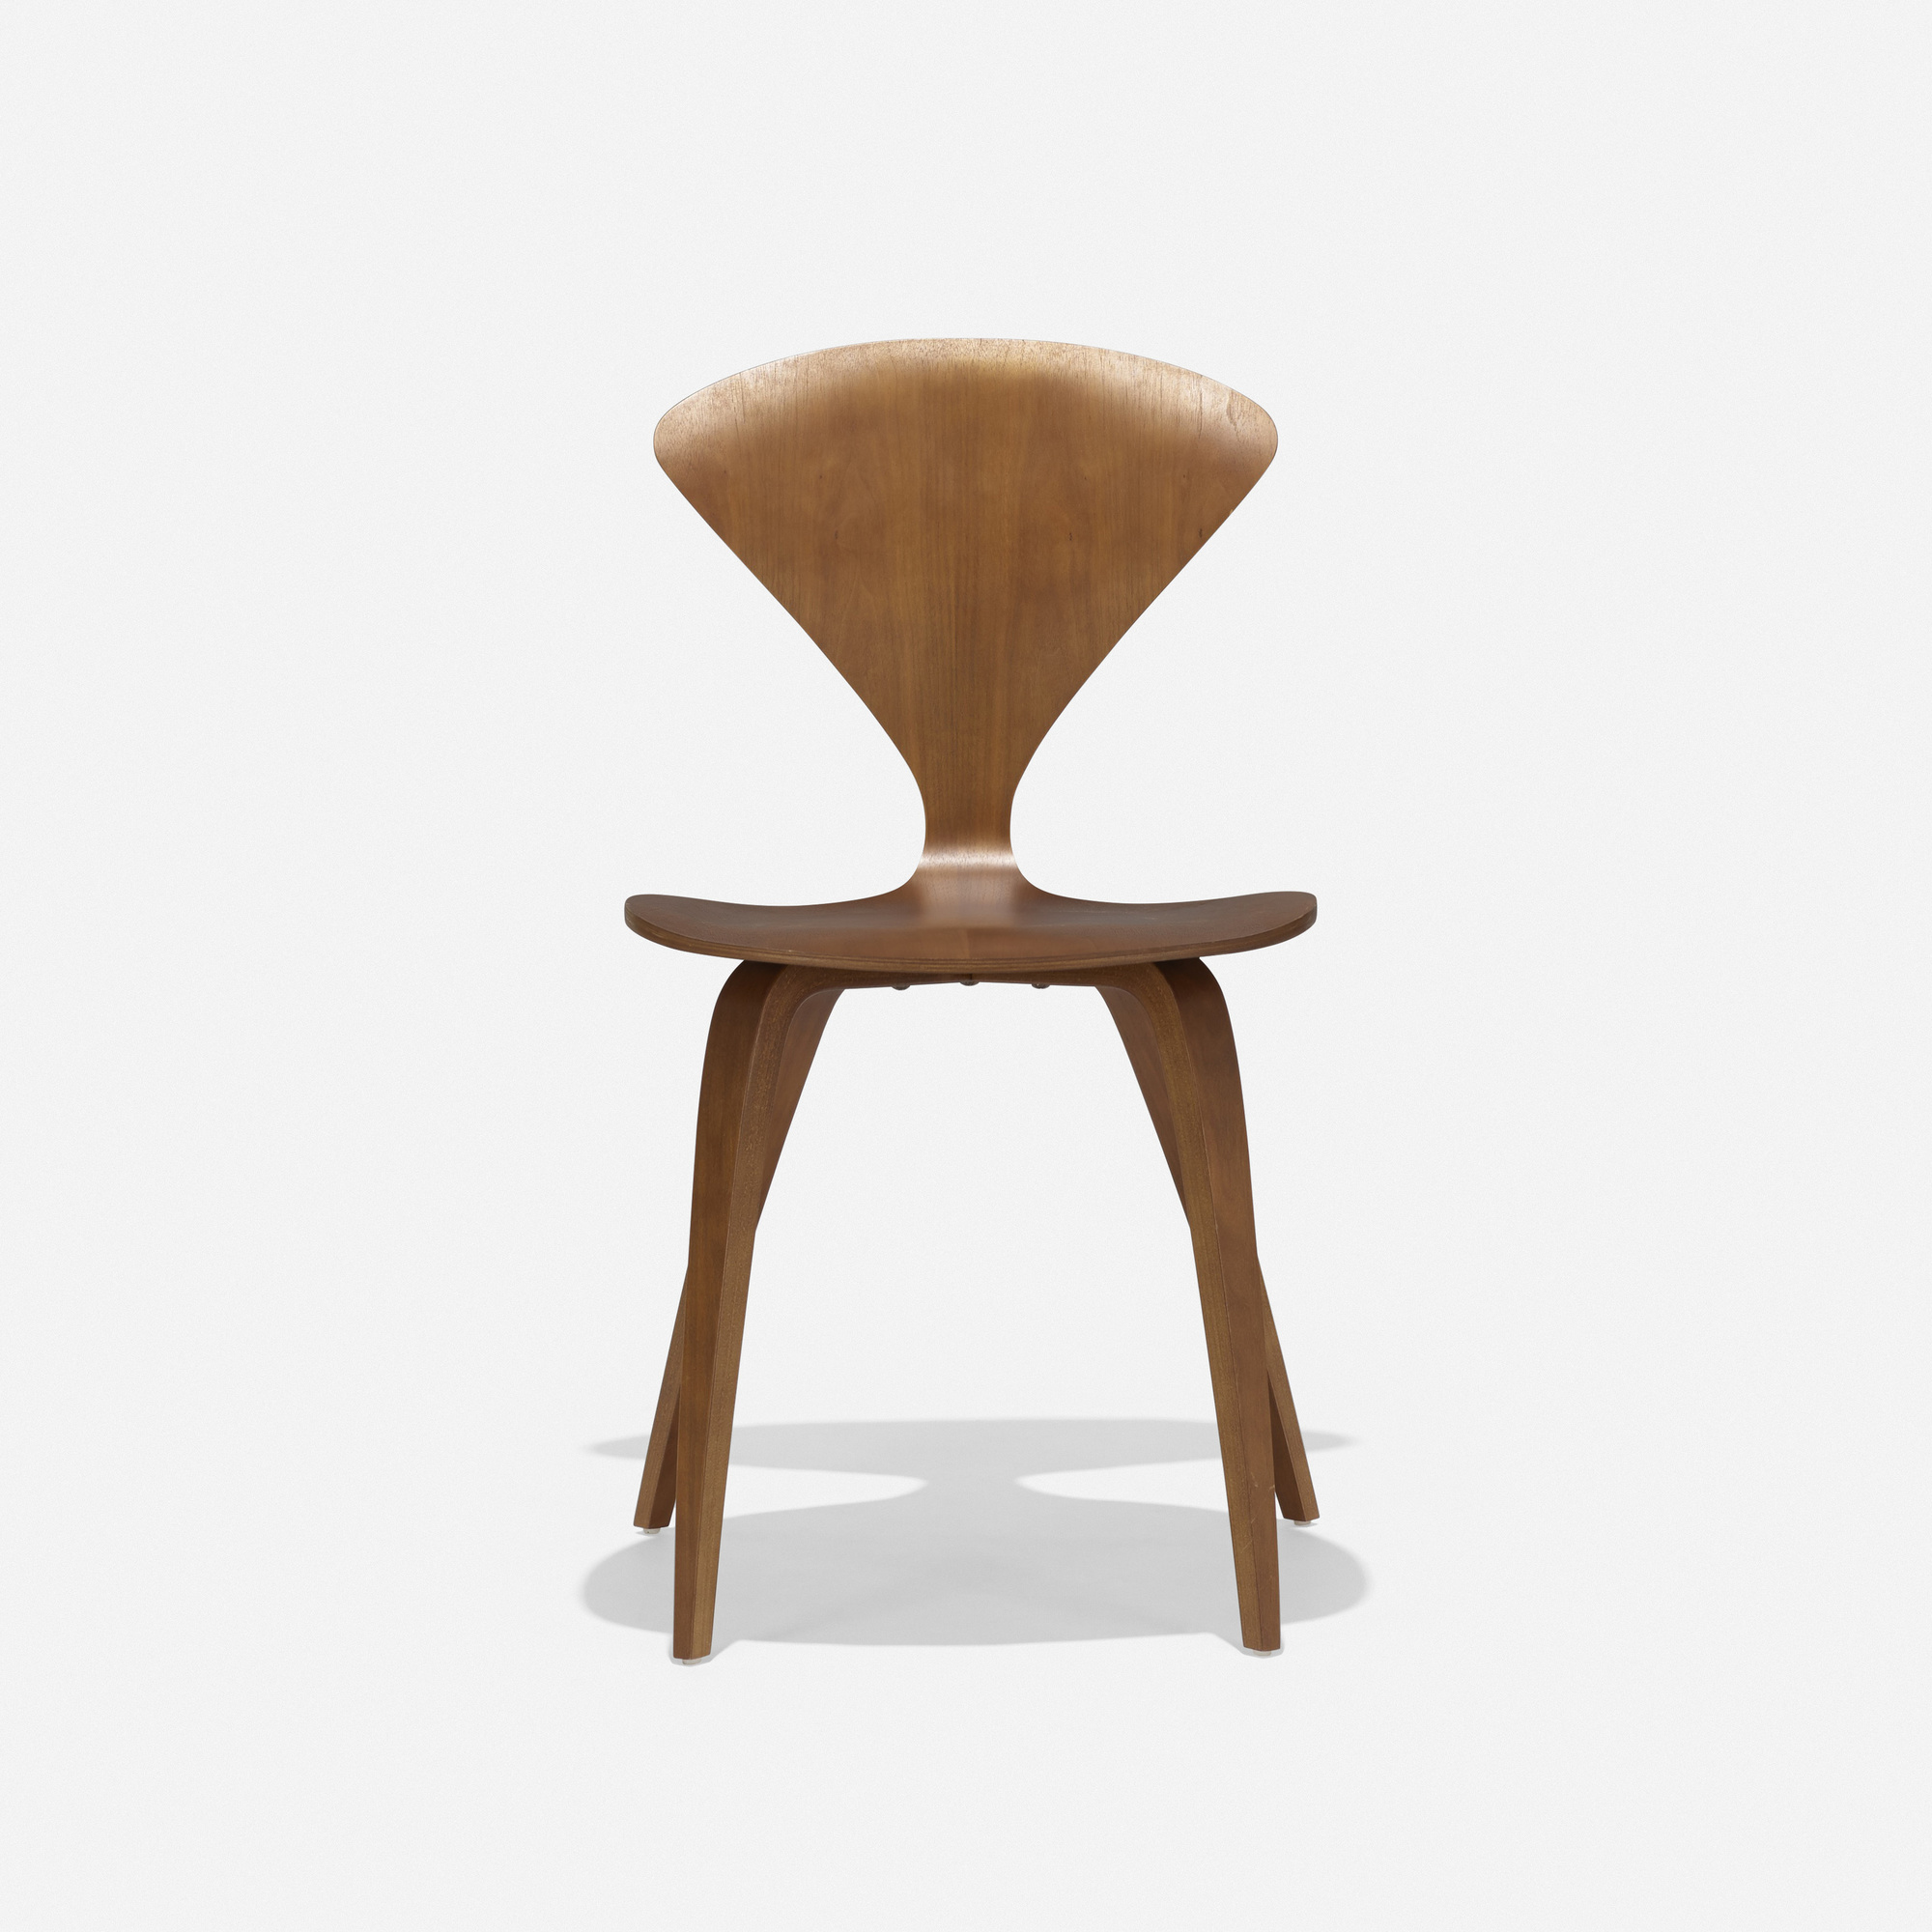 392 norman cherner chair 2 of 3